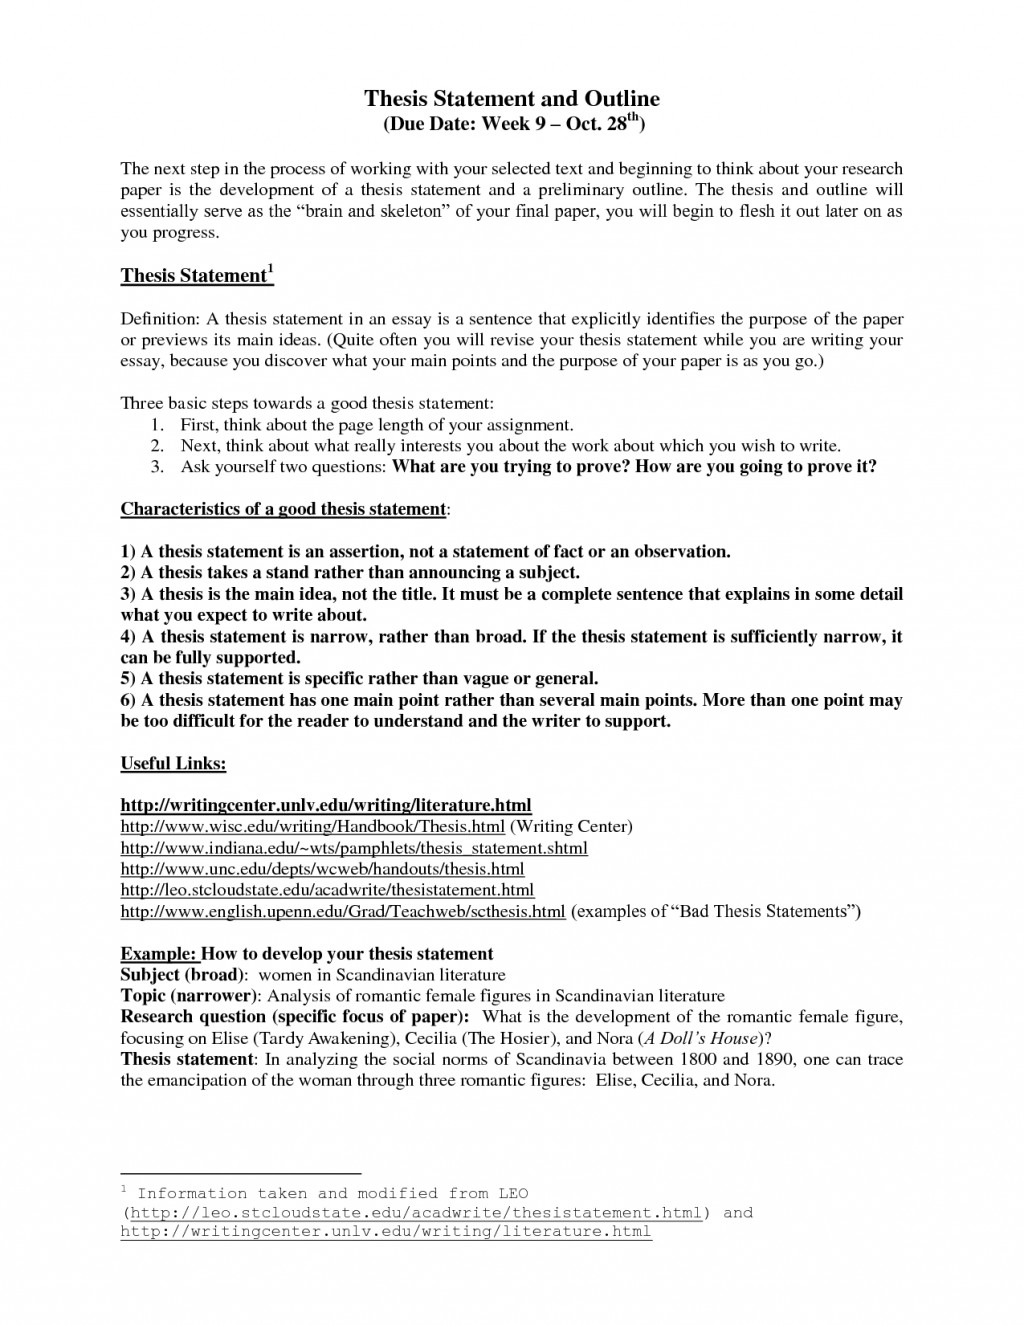 008 Research Paper Thesis Statementnd Outline Template Wx8nmdez What Is The Purpose Of Impressive A Conducting Critiquing Process Writing Large